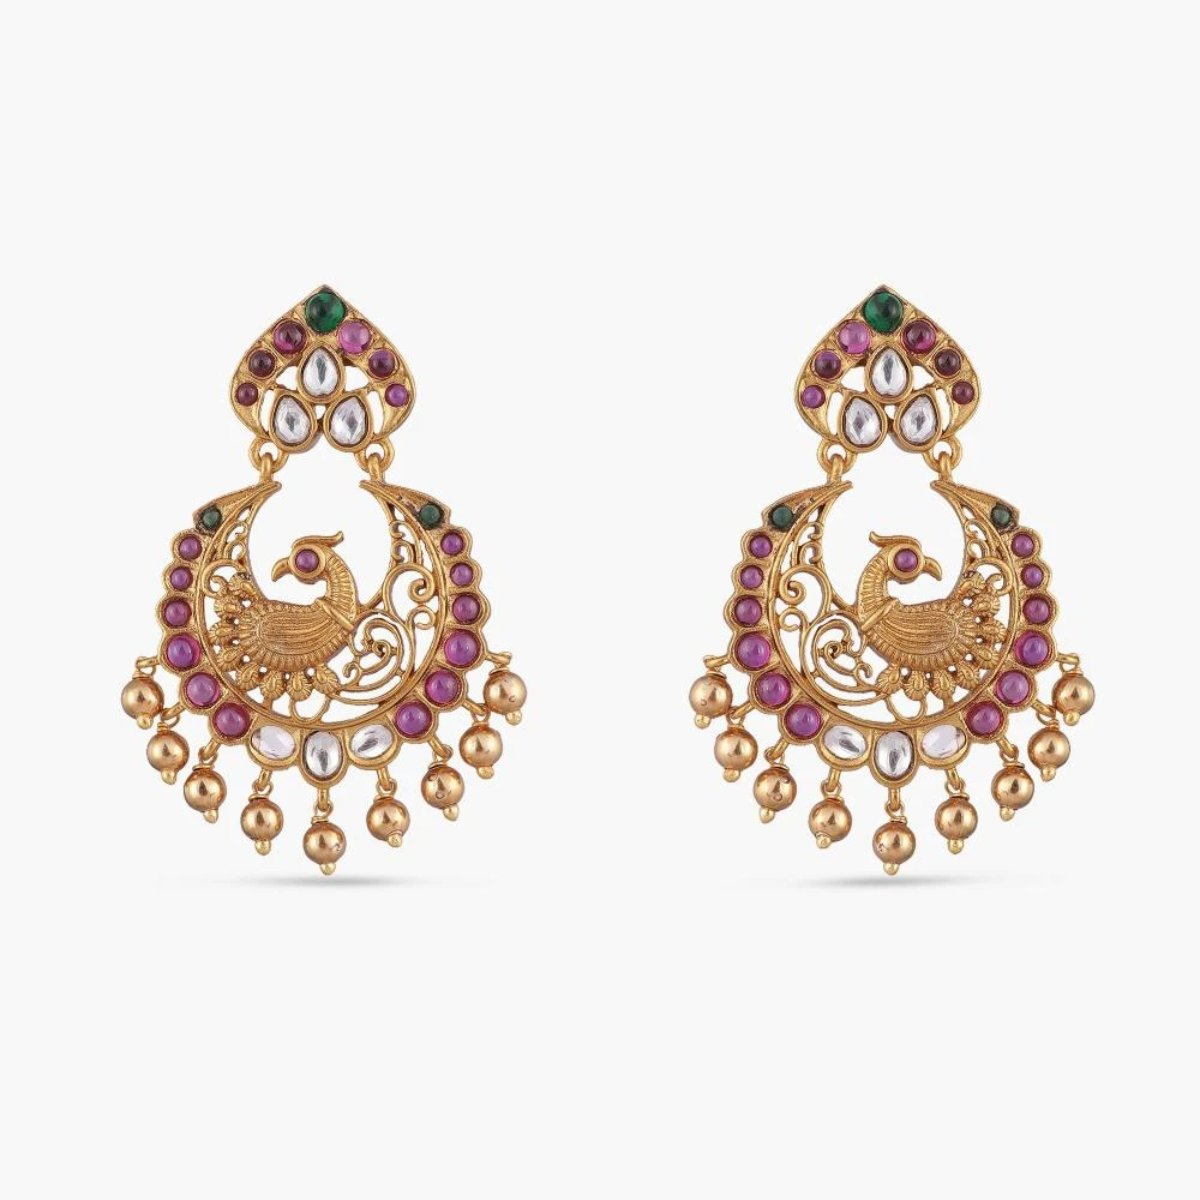 Meena Antique Earrings